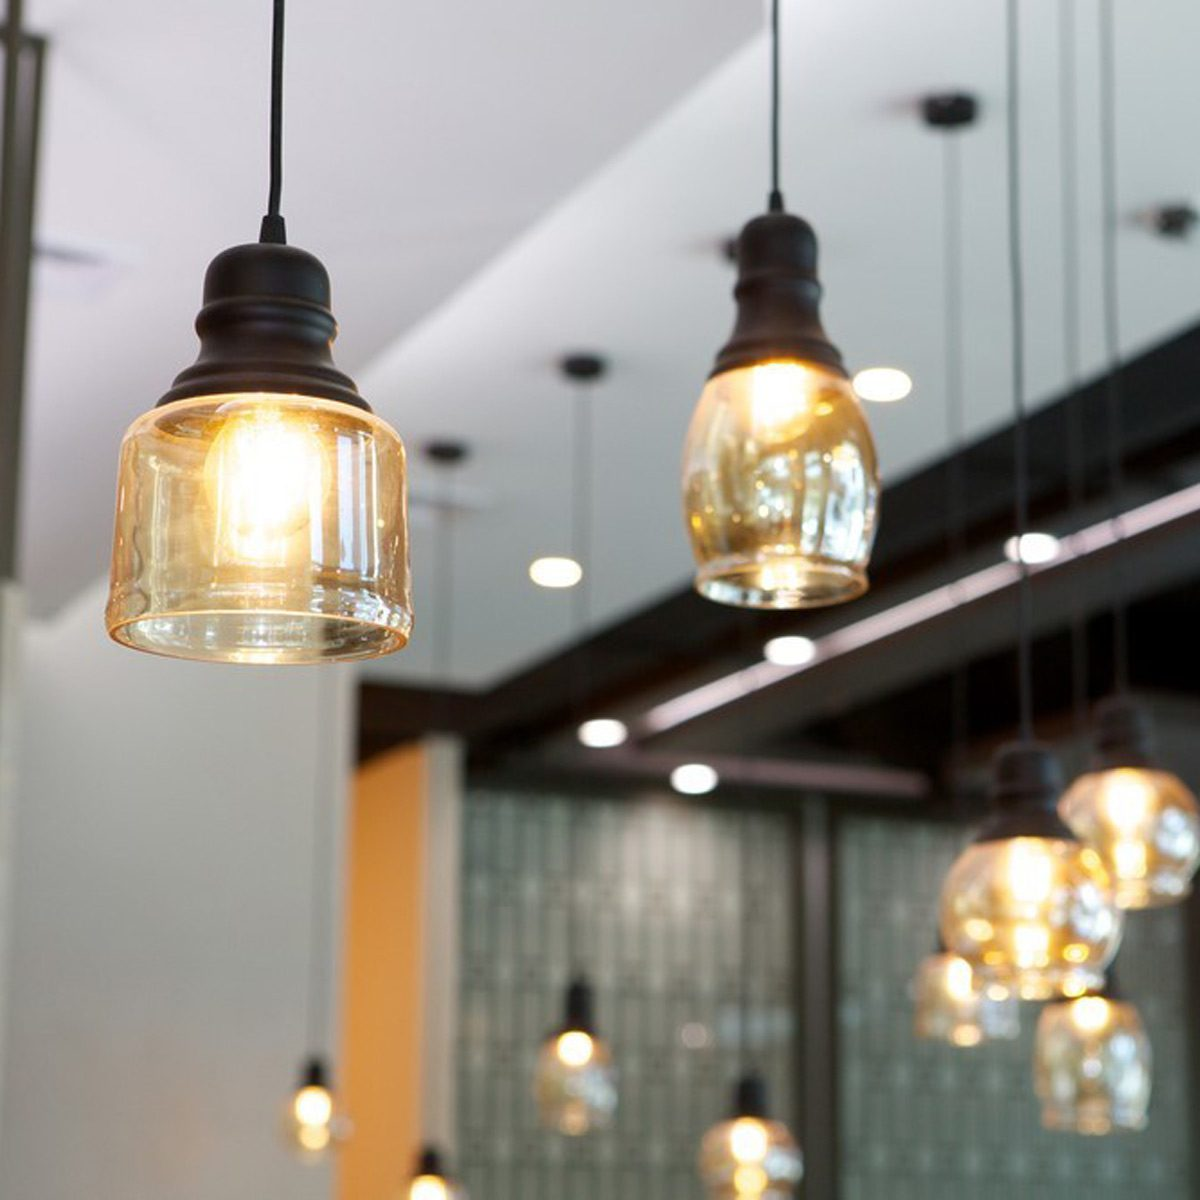 Update: Modern Light Fixtures